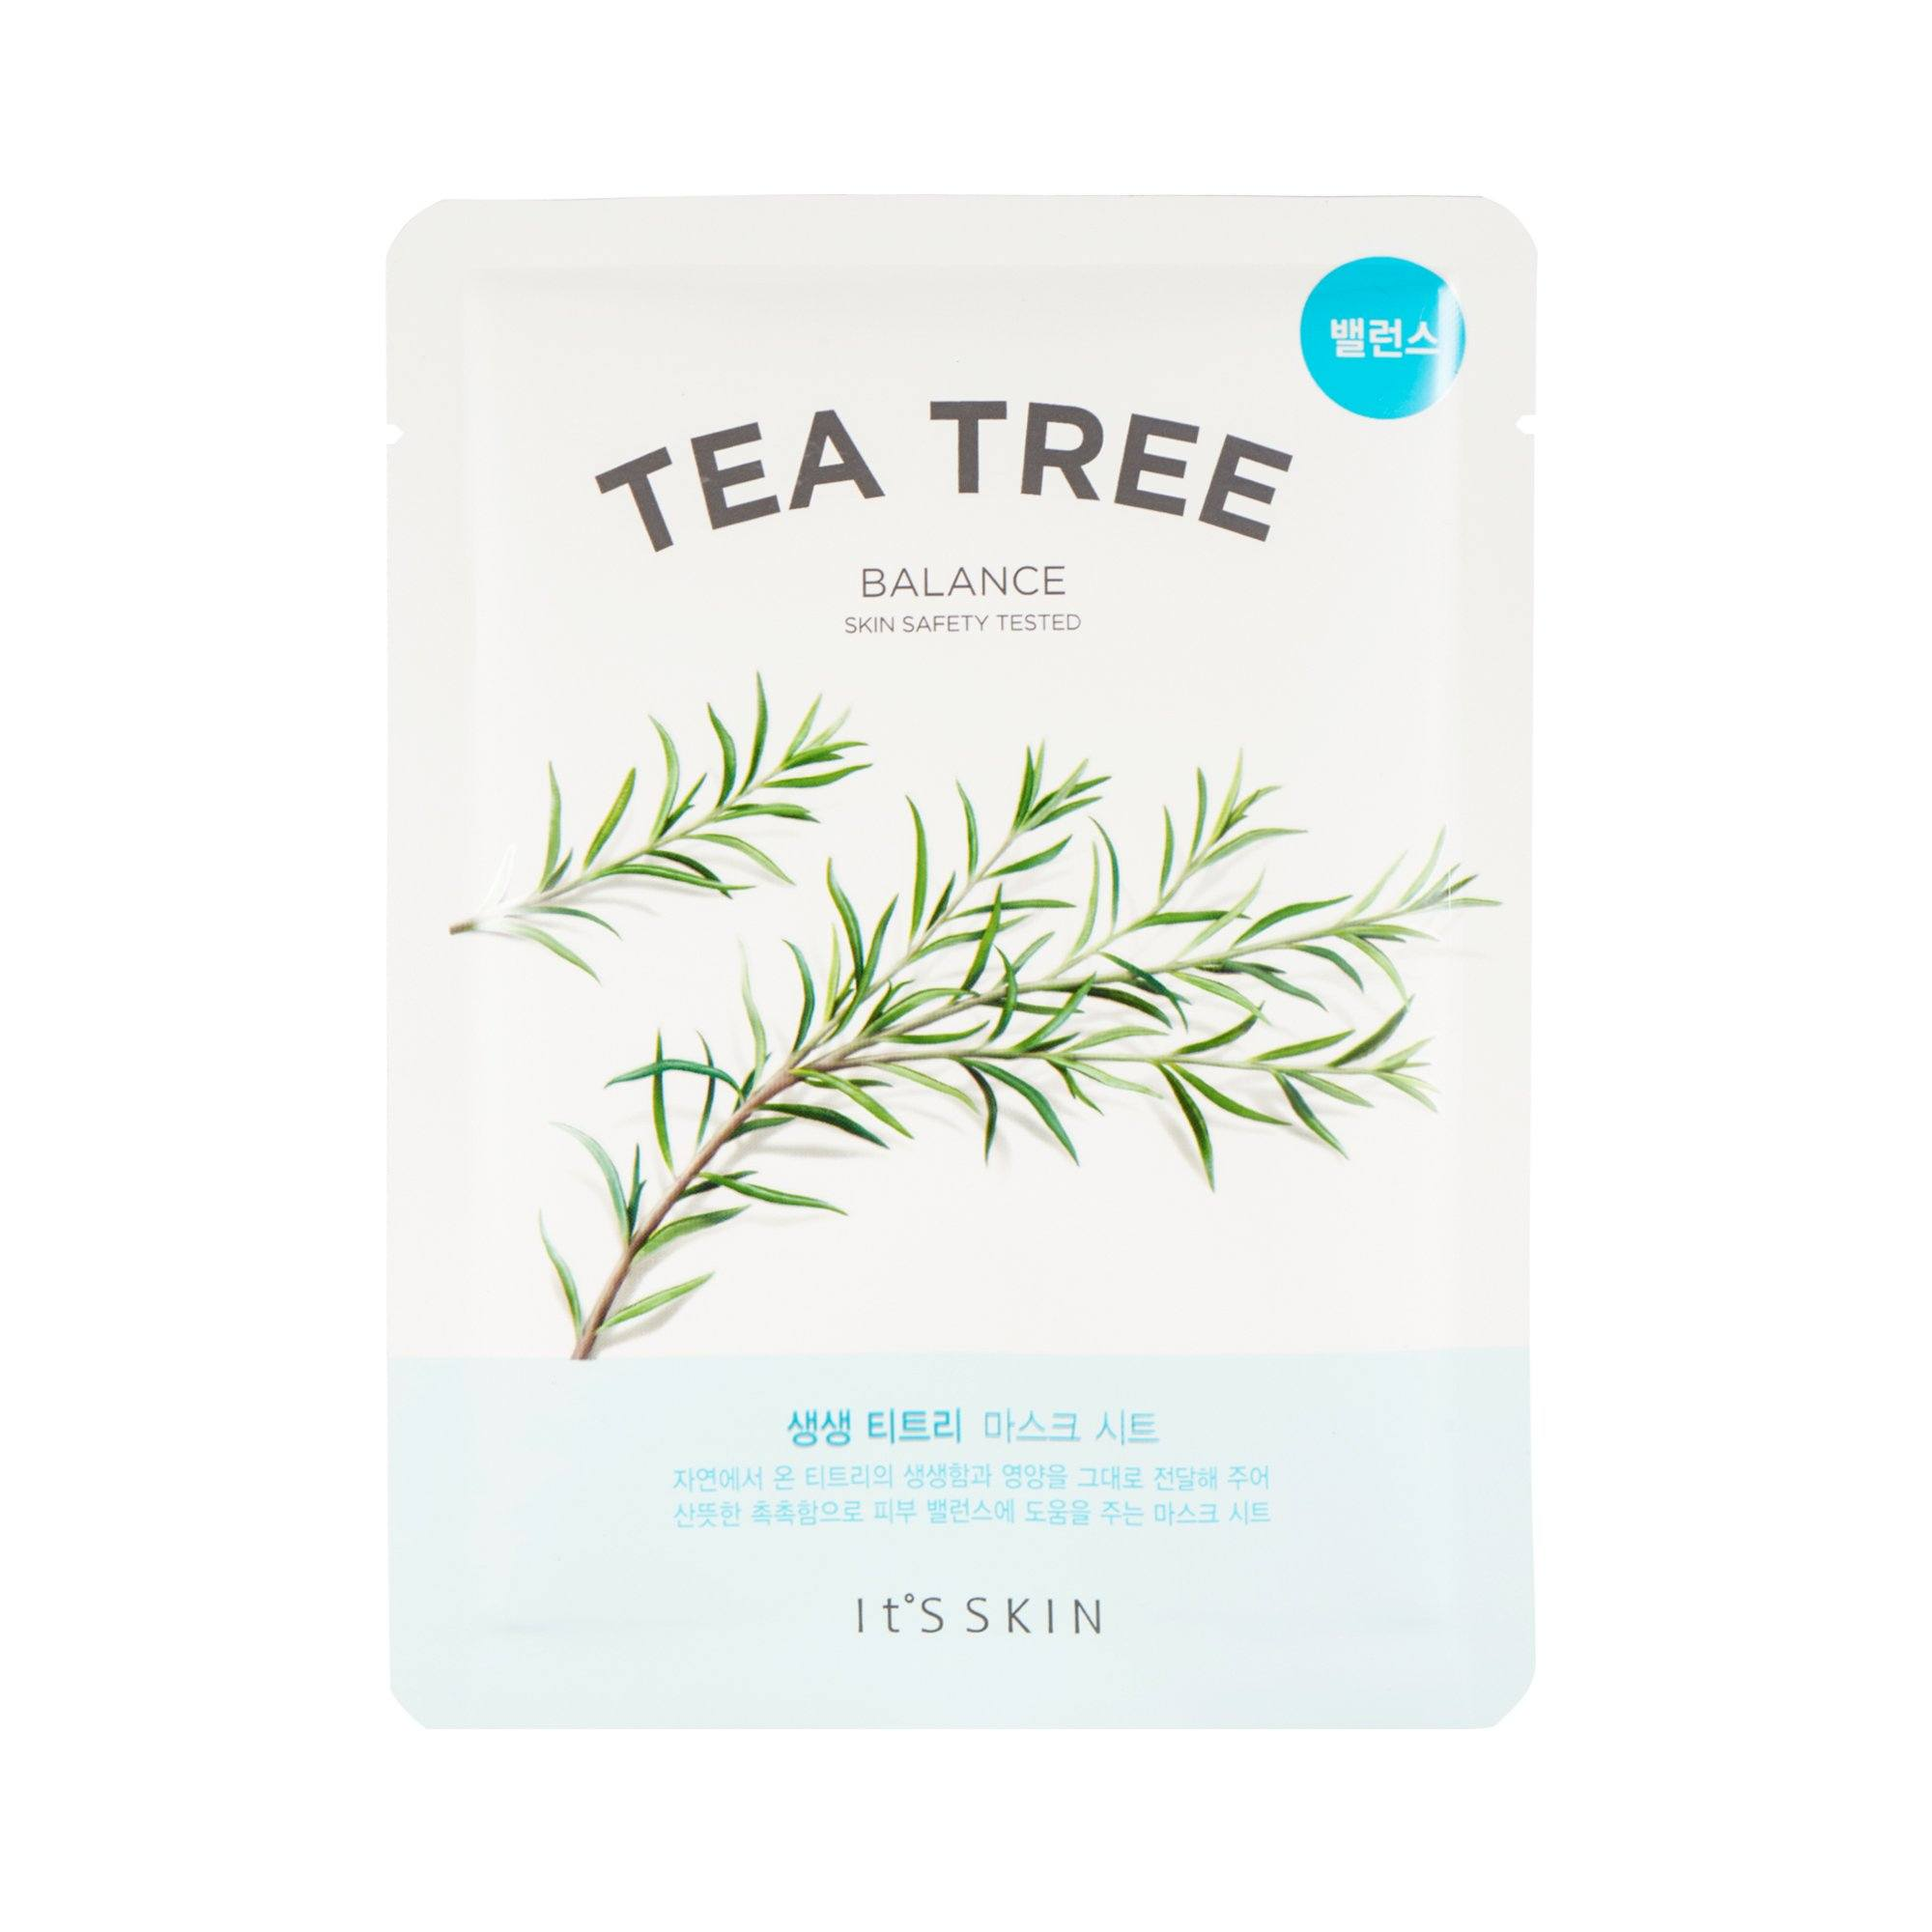 Health & Beauty > Personal Care > Cosmetics > Skin Care > Compressed Skin Care Mask Sheets - The Fresh Mask Sheet Tea Tree Maska W Płachcie